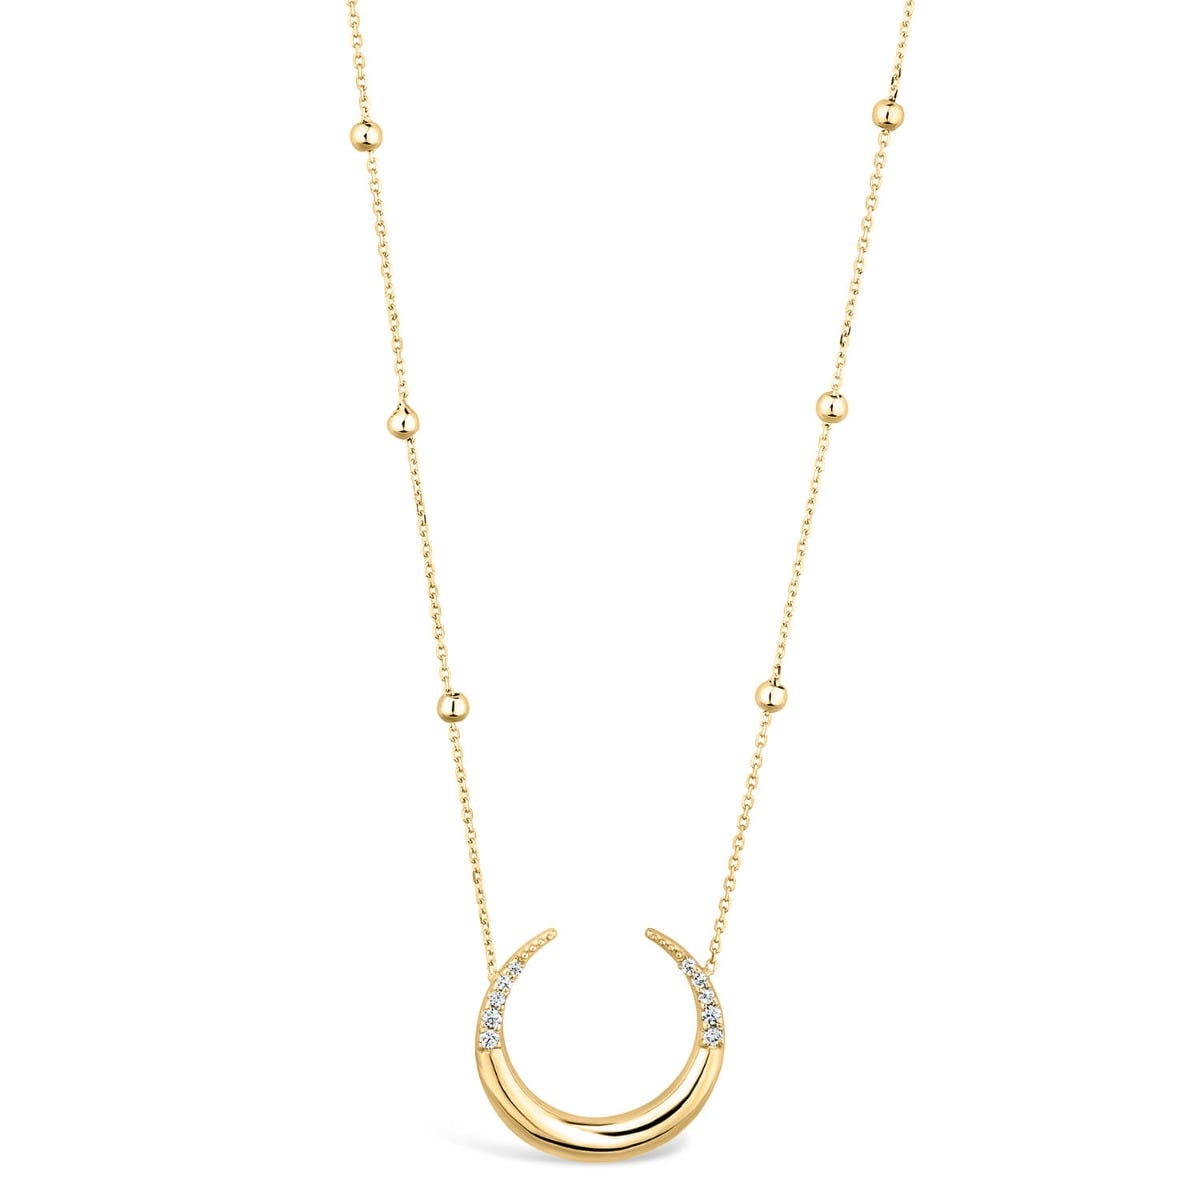 Ladies 9ct Gold Stone Set Horseshoe Beaded Chain Necklace